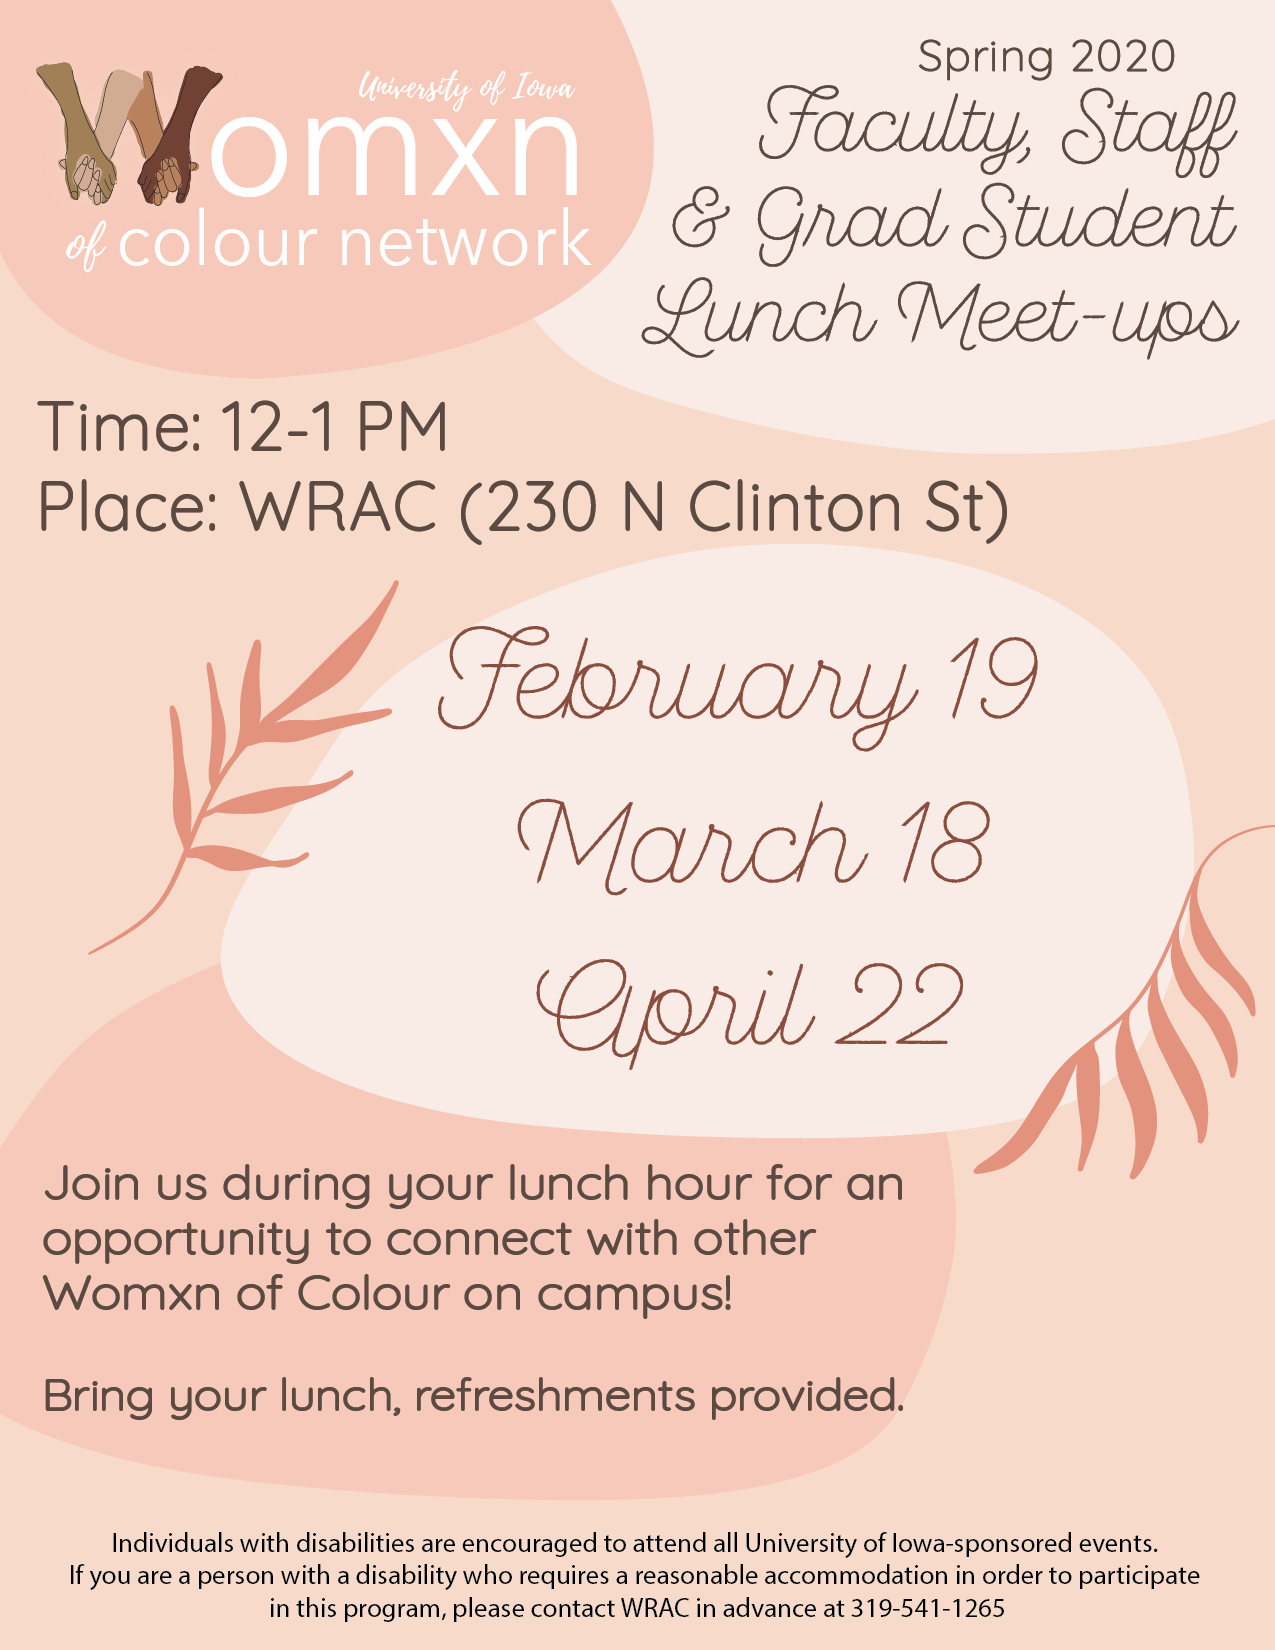 WOCN: Faculty, Staff & Grad Student Lunch Meet-Up